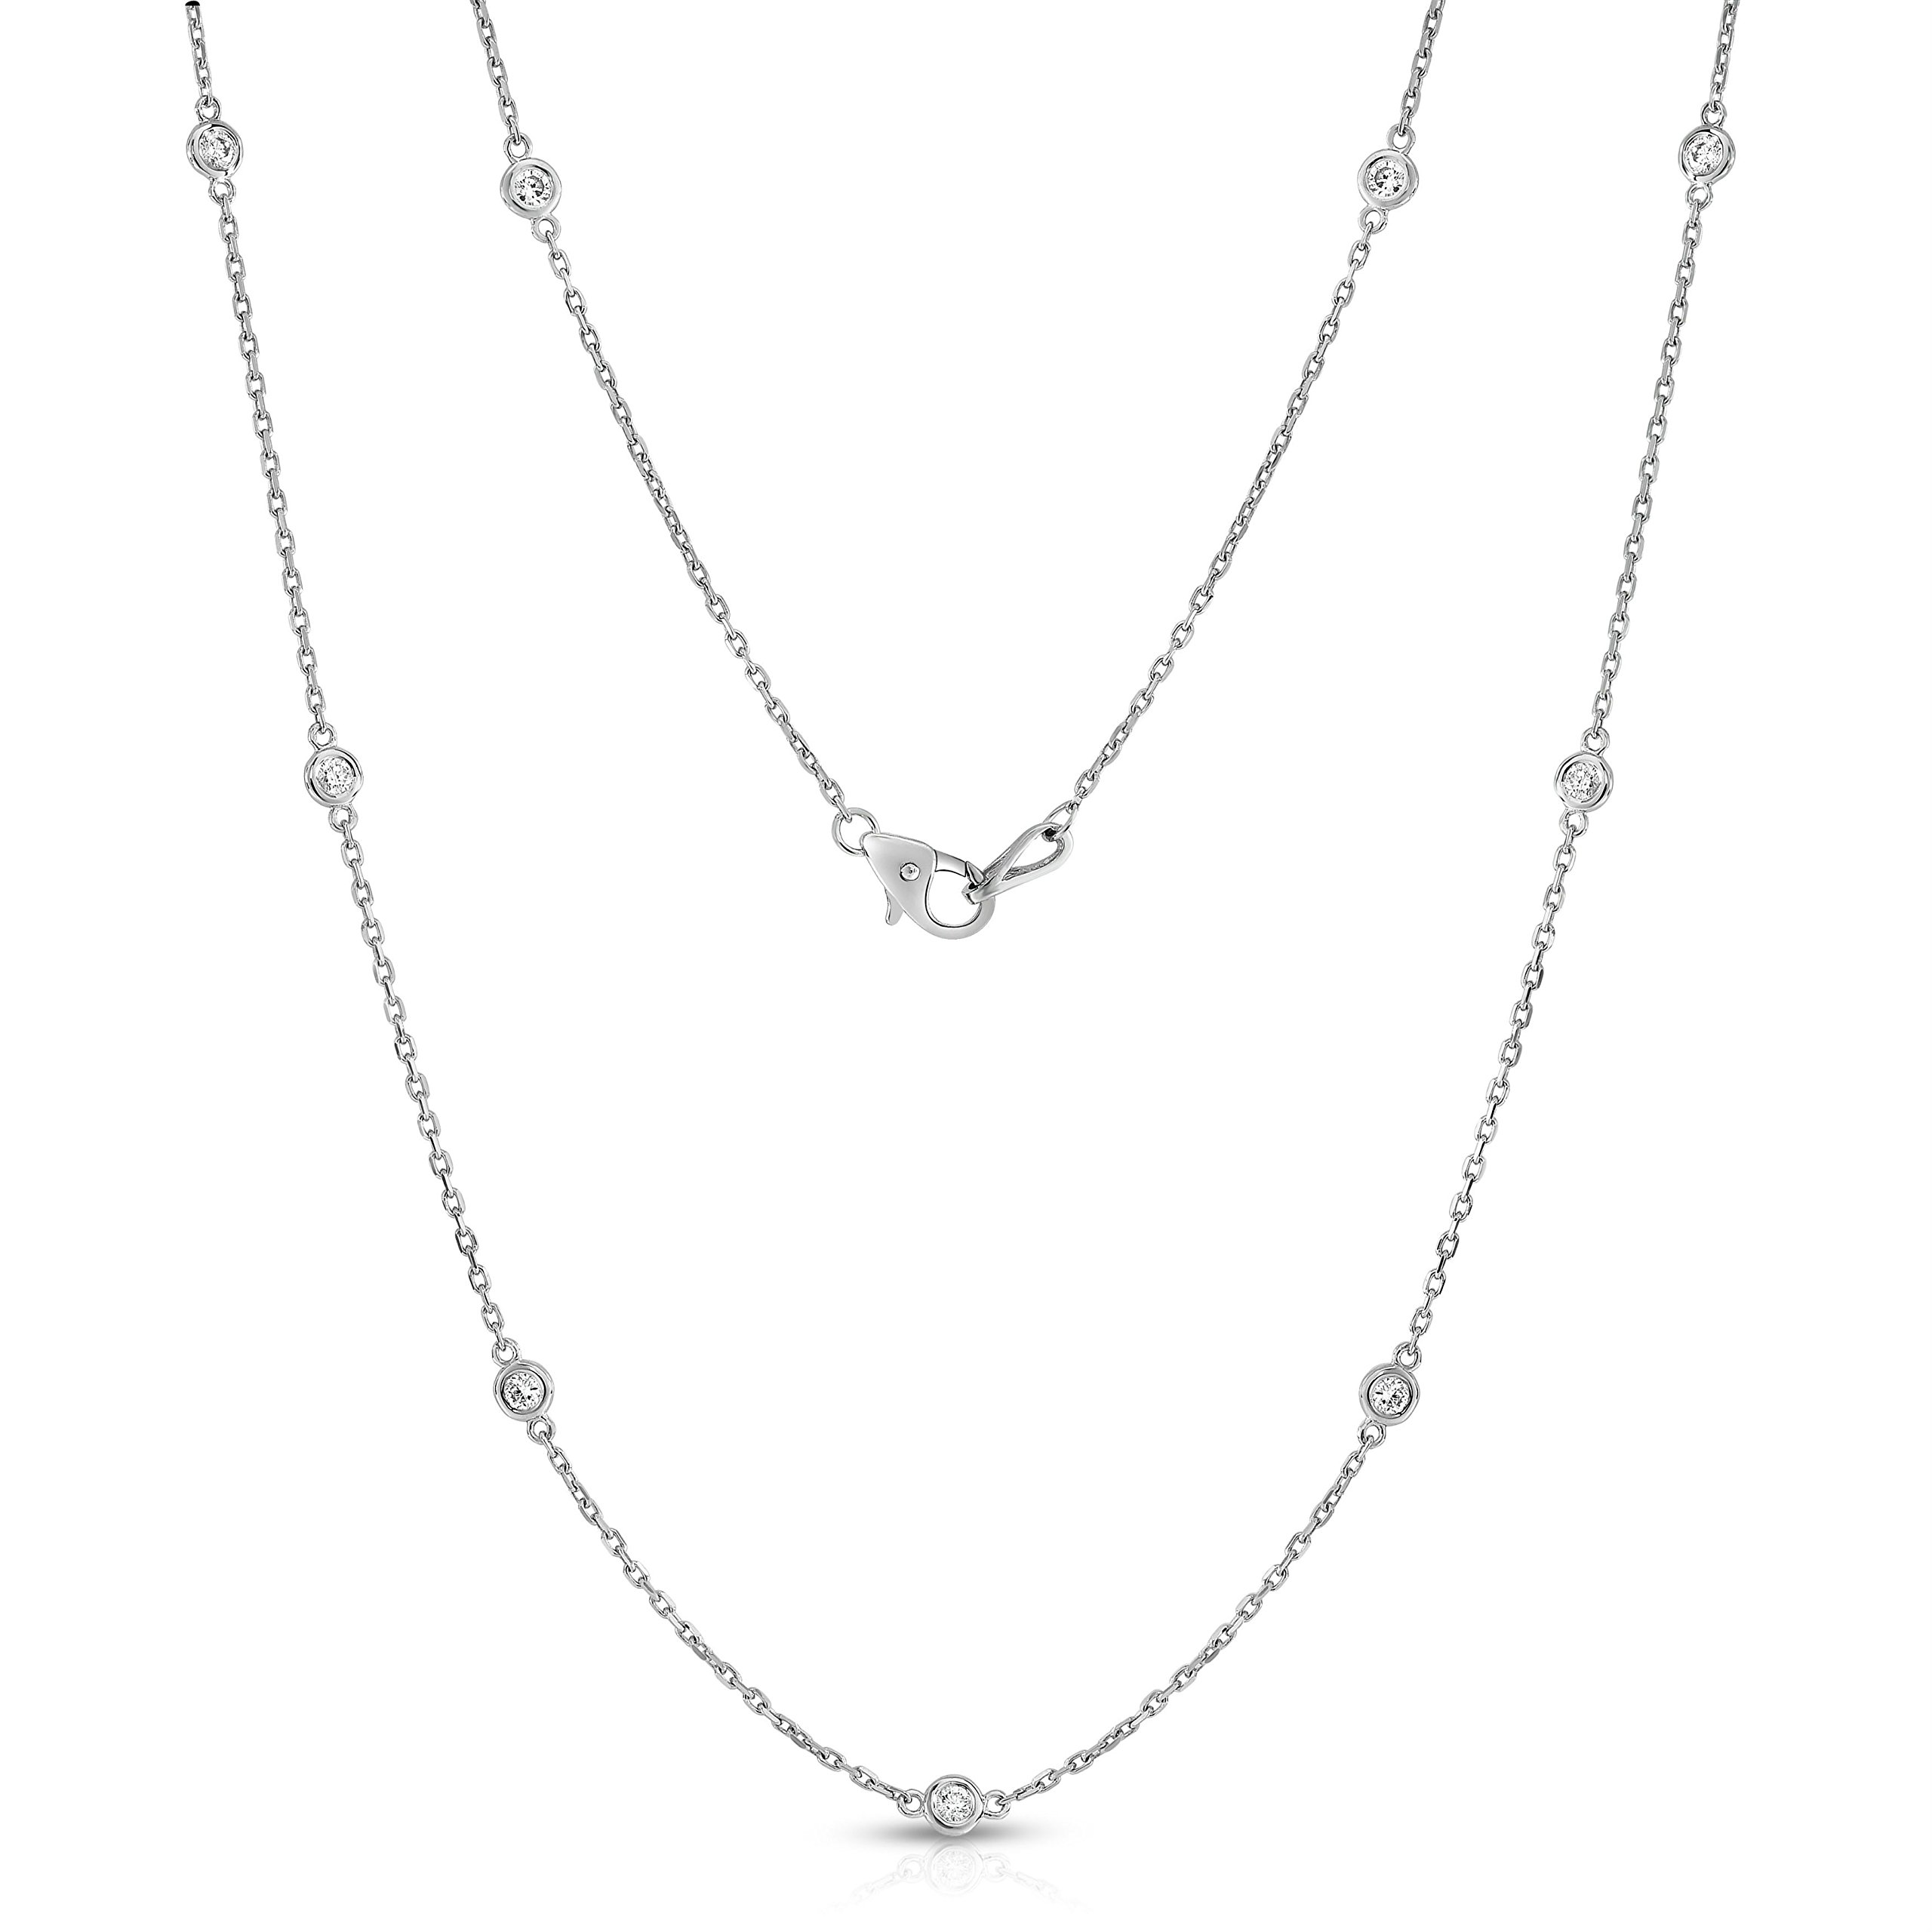 Noray Designs 14K White Gold Diamond by the Yard 10 Station Necklace (1 Ct, G-H, I1-I2), 18 Inches